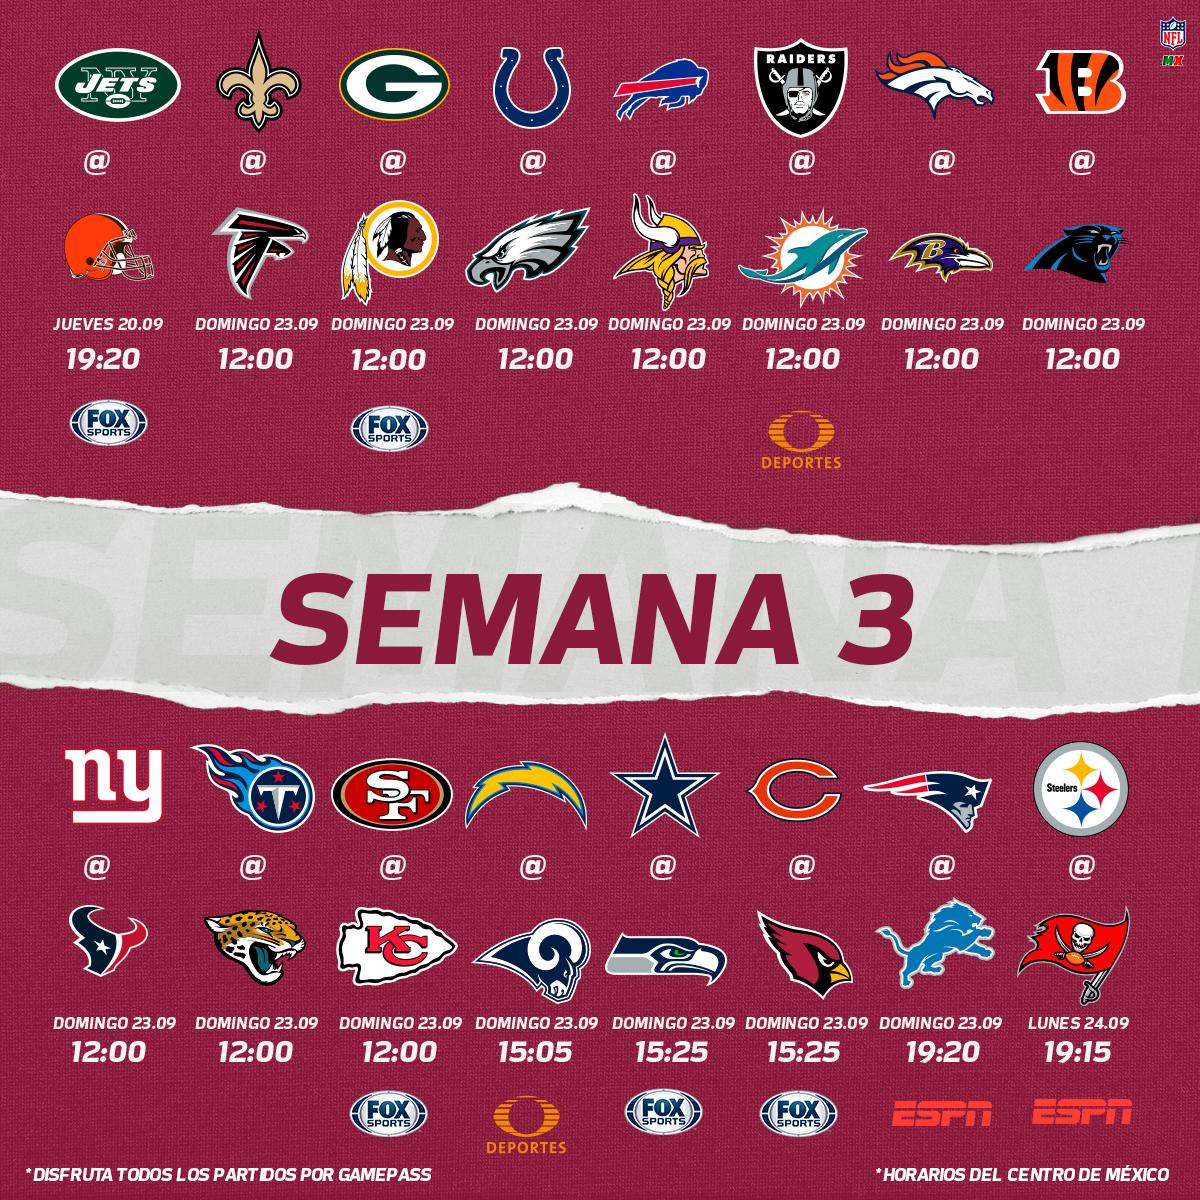 Nfl Calendario.Nfl Mexico On Twitter Aqui Esta El Calendario De La